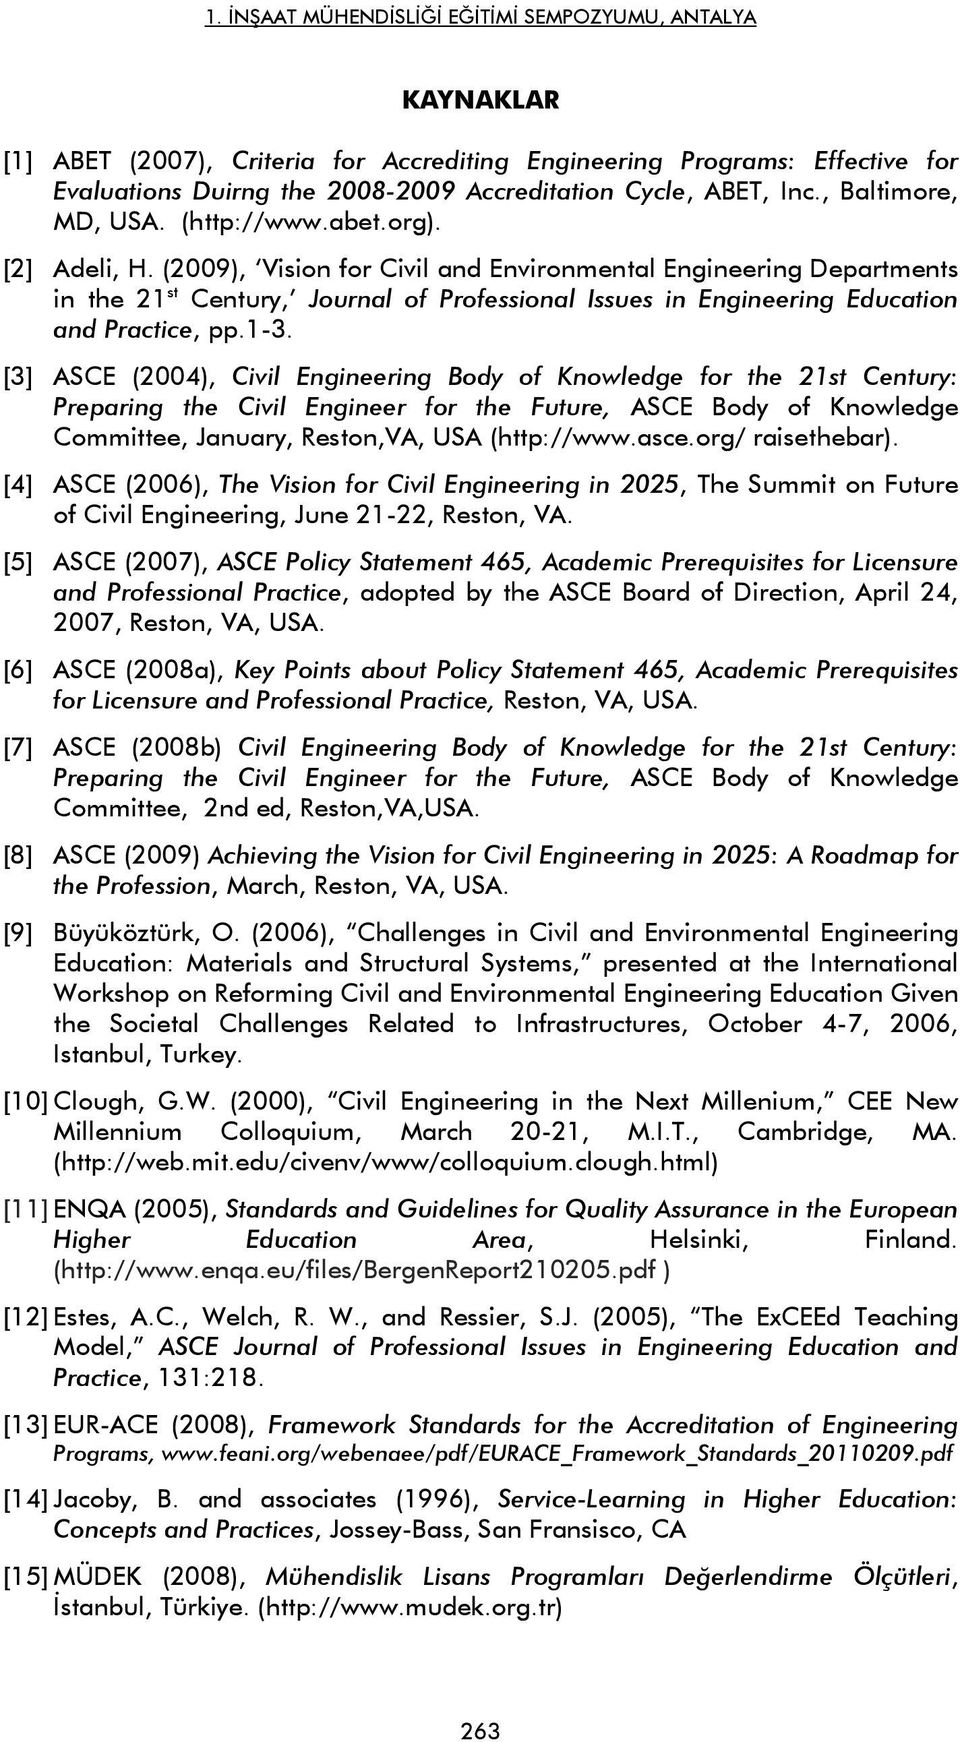 [3] ASCE (2004), Civil Engineering Body of Knowledge for the 21st Century: Preparing the Civil Engineer for the Future, ASCE Body of Knowledge Committee, January, Reston,VA, USA (http://www.asce.